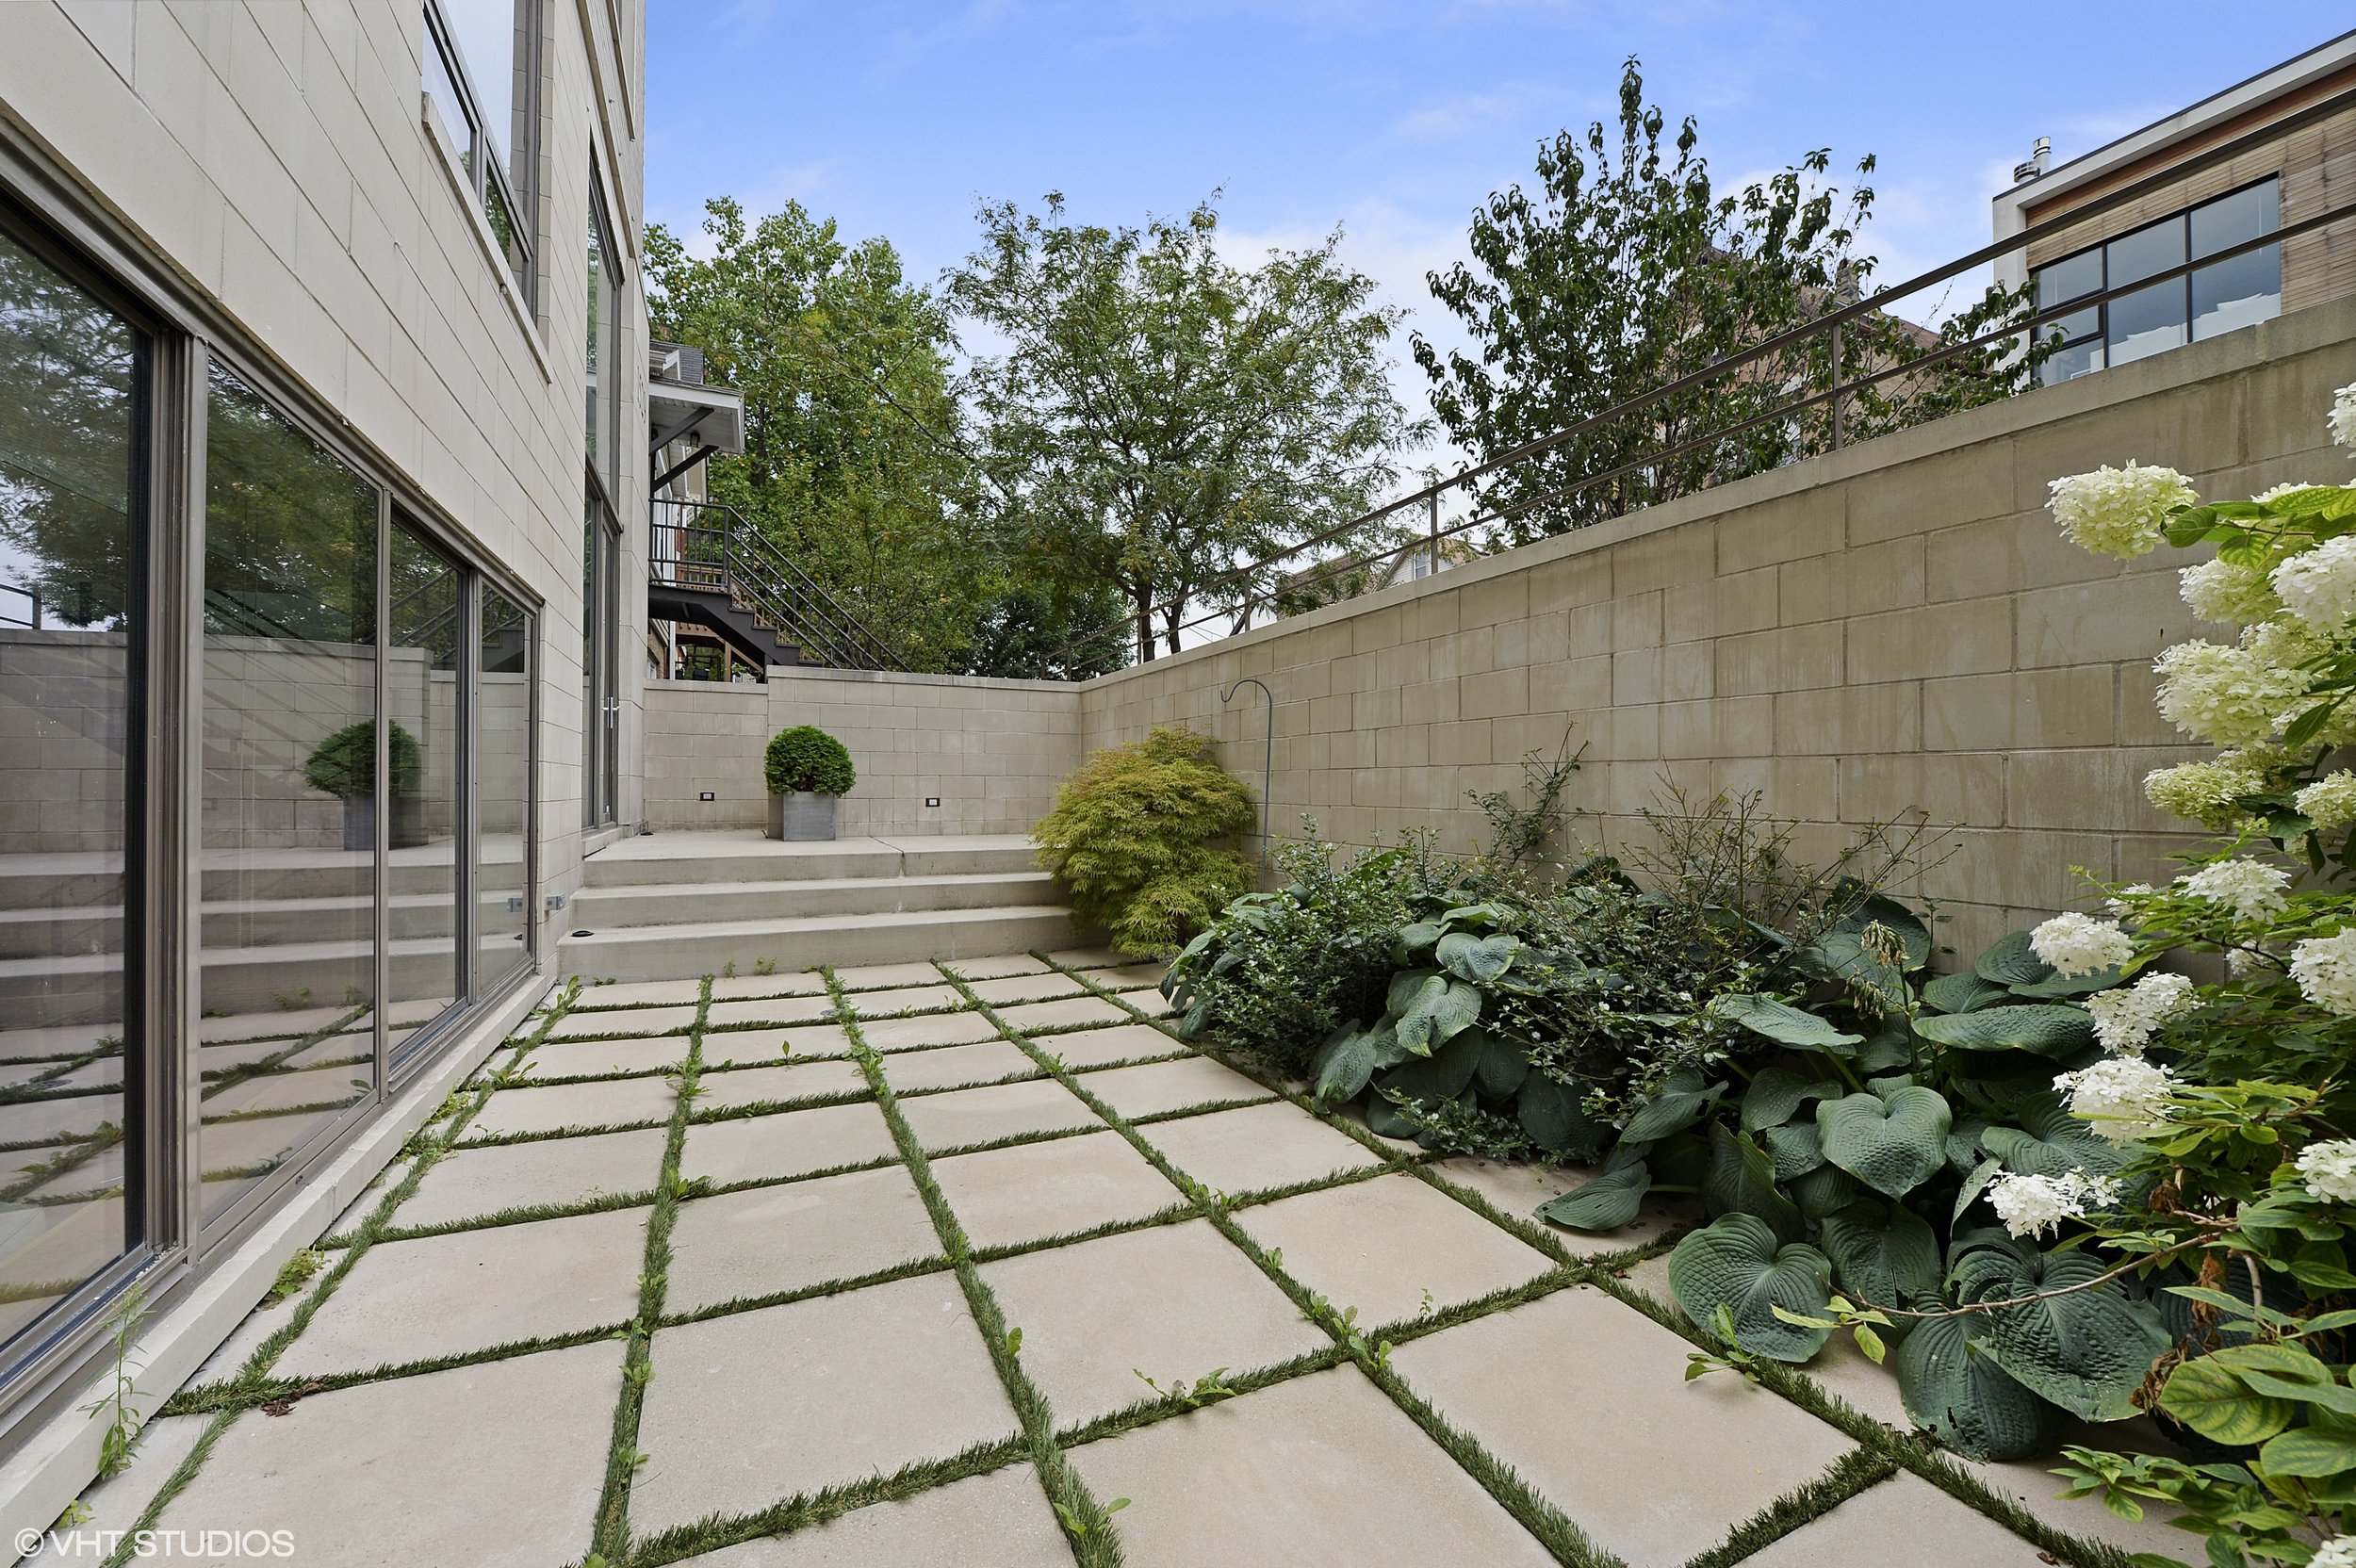 20_1529WestChestnutSt_101_85_Patio_HiRes.jpg